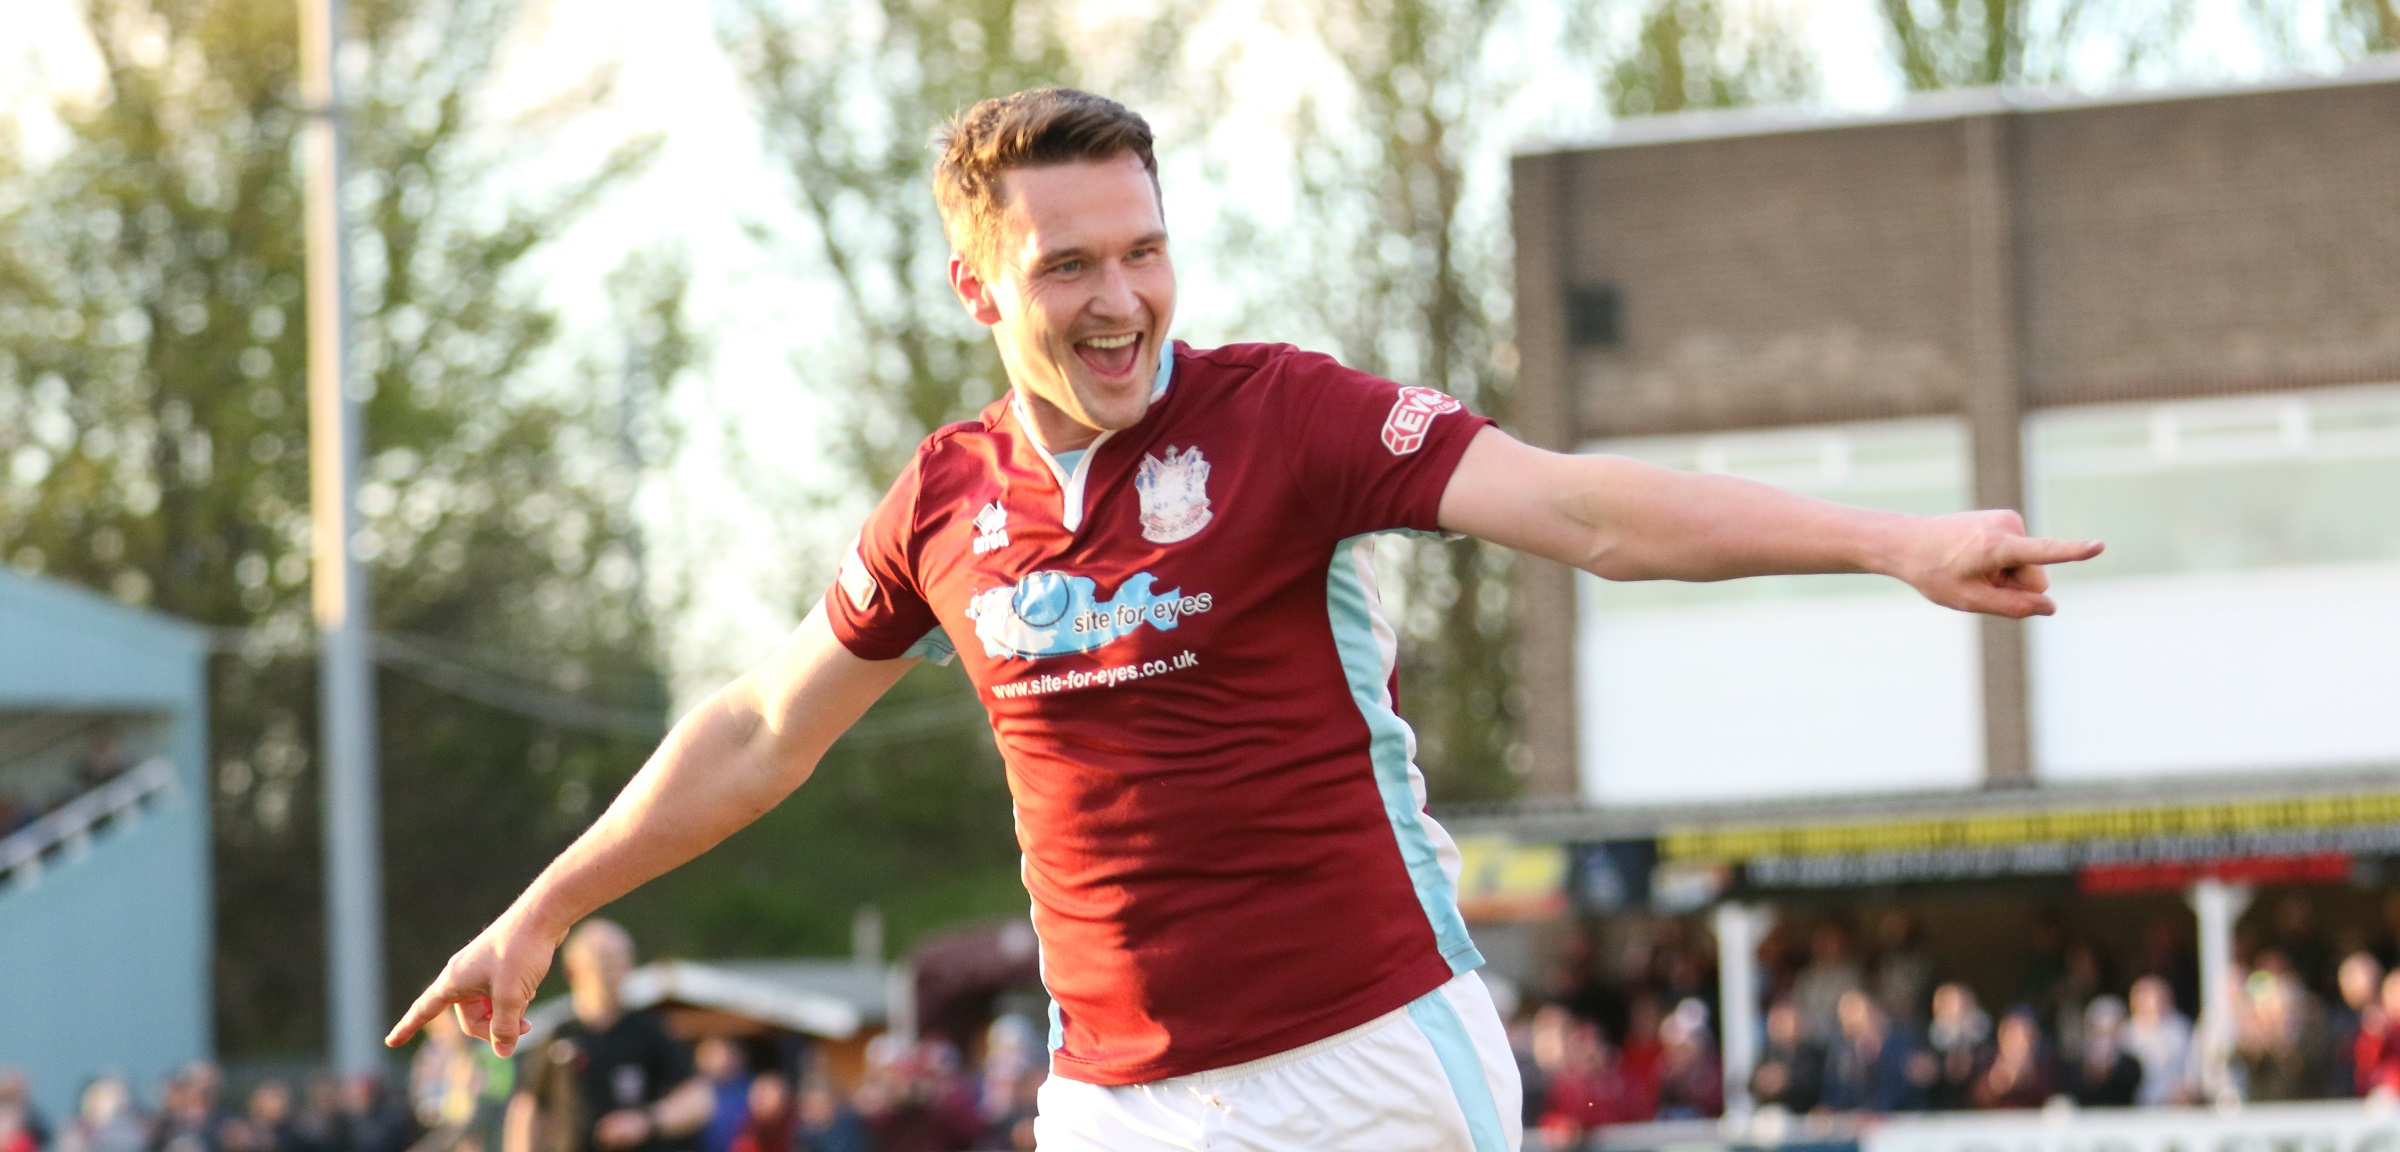 South Shields 5-0 Kendal Town: Stylish display from champions